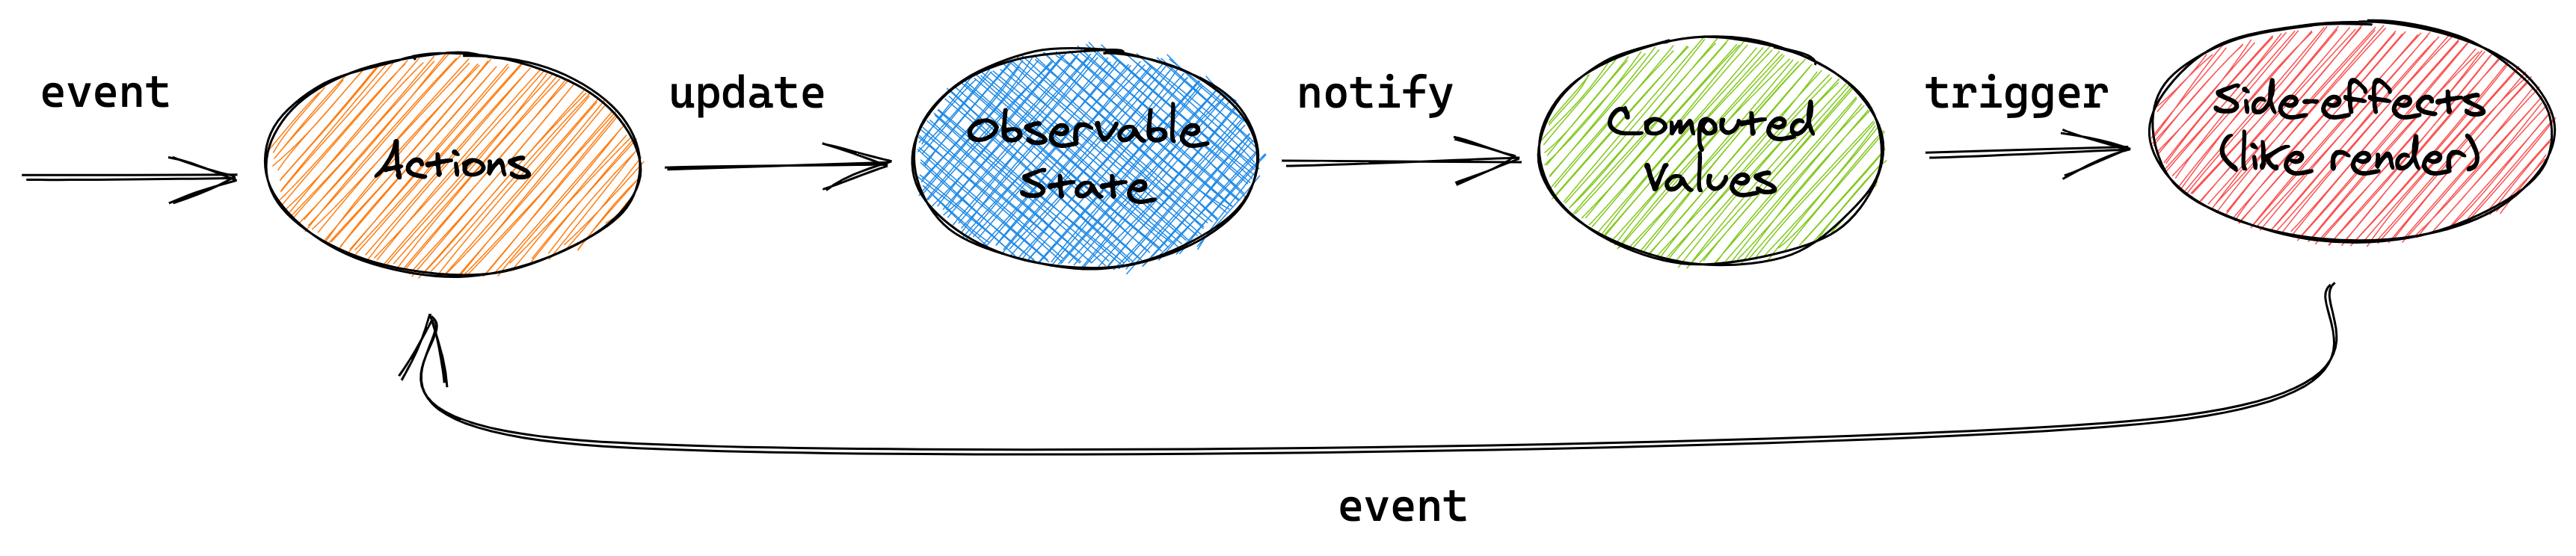 MobX unidirectional flow